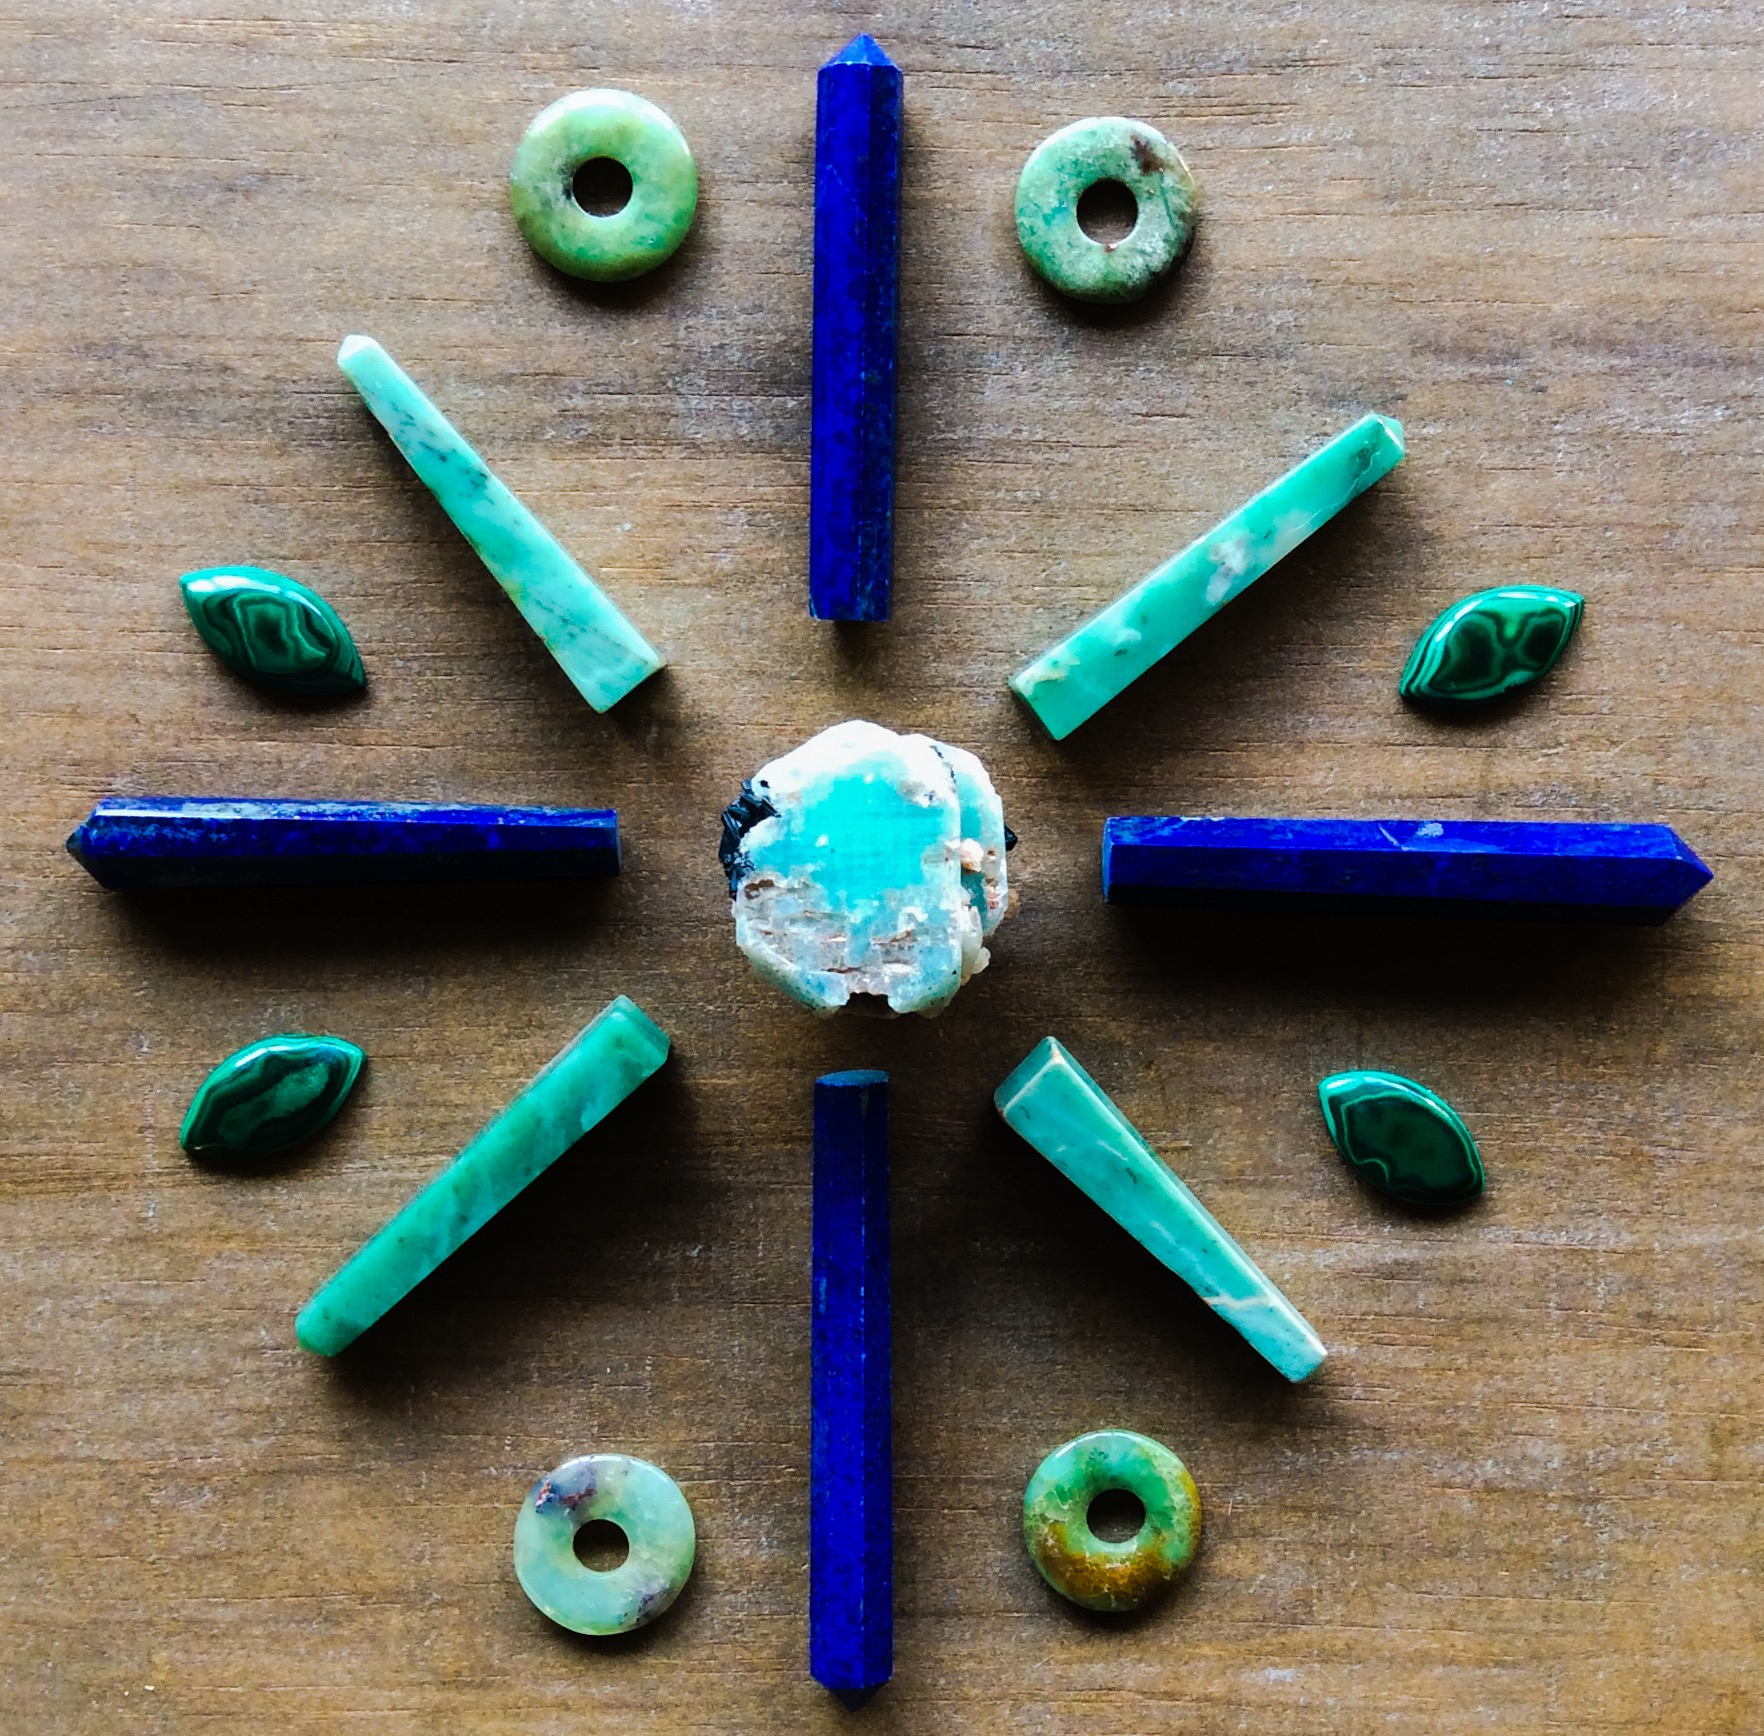 Amazonite, Lapis Lazuli, Chrysoprase and Malachite